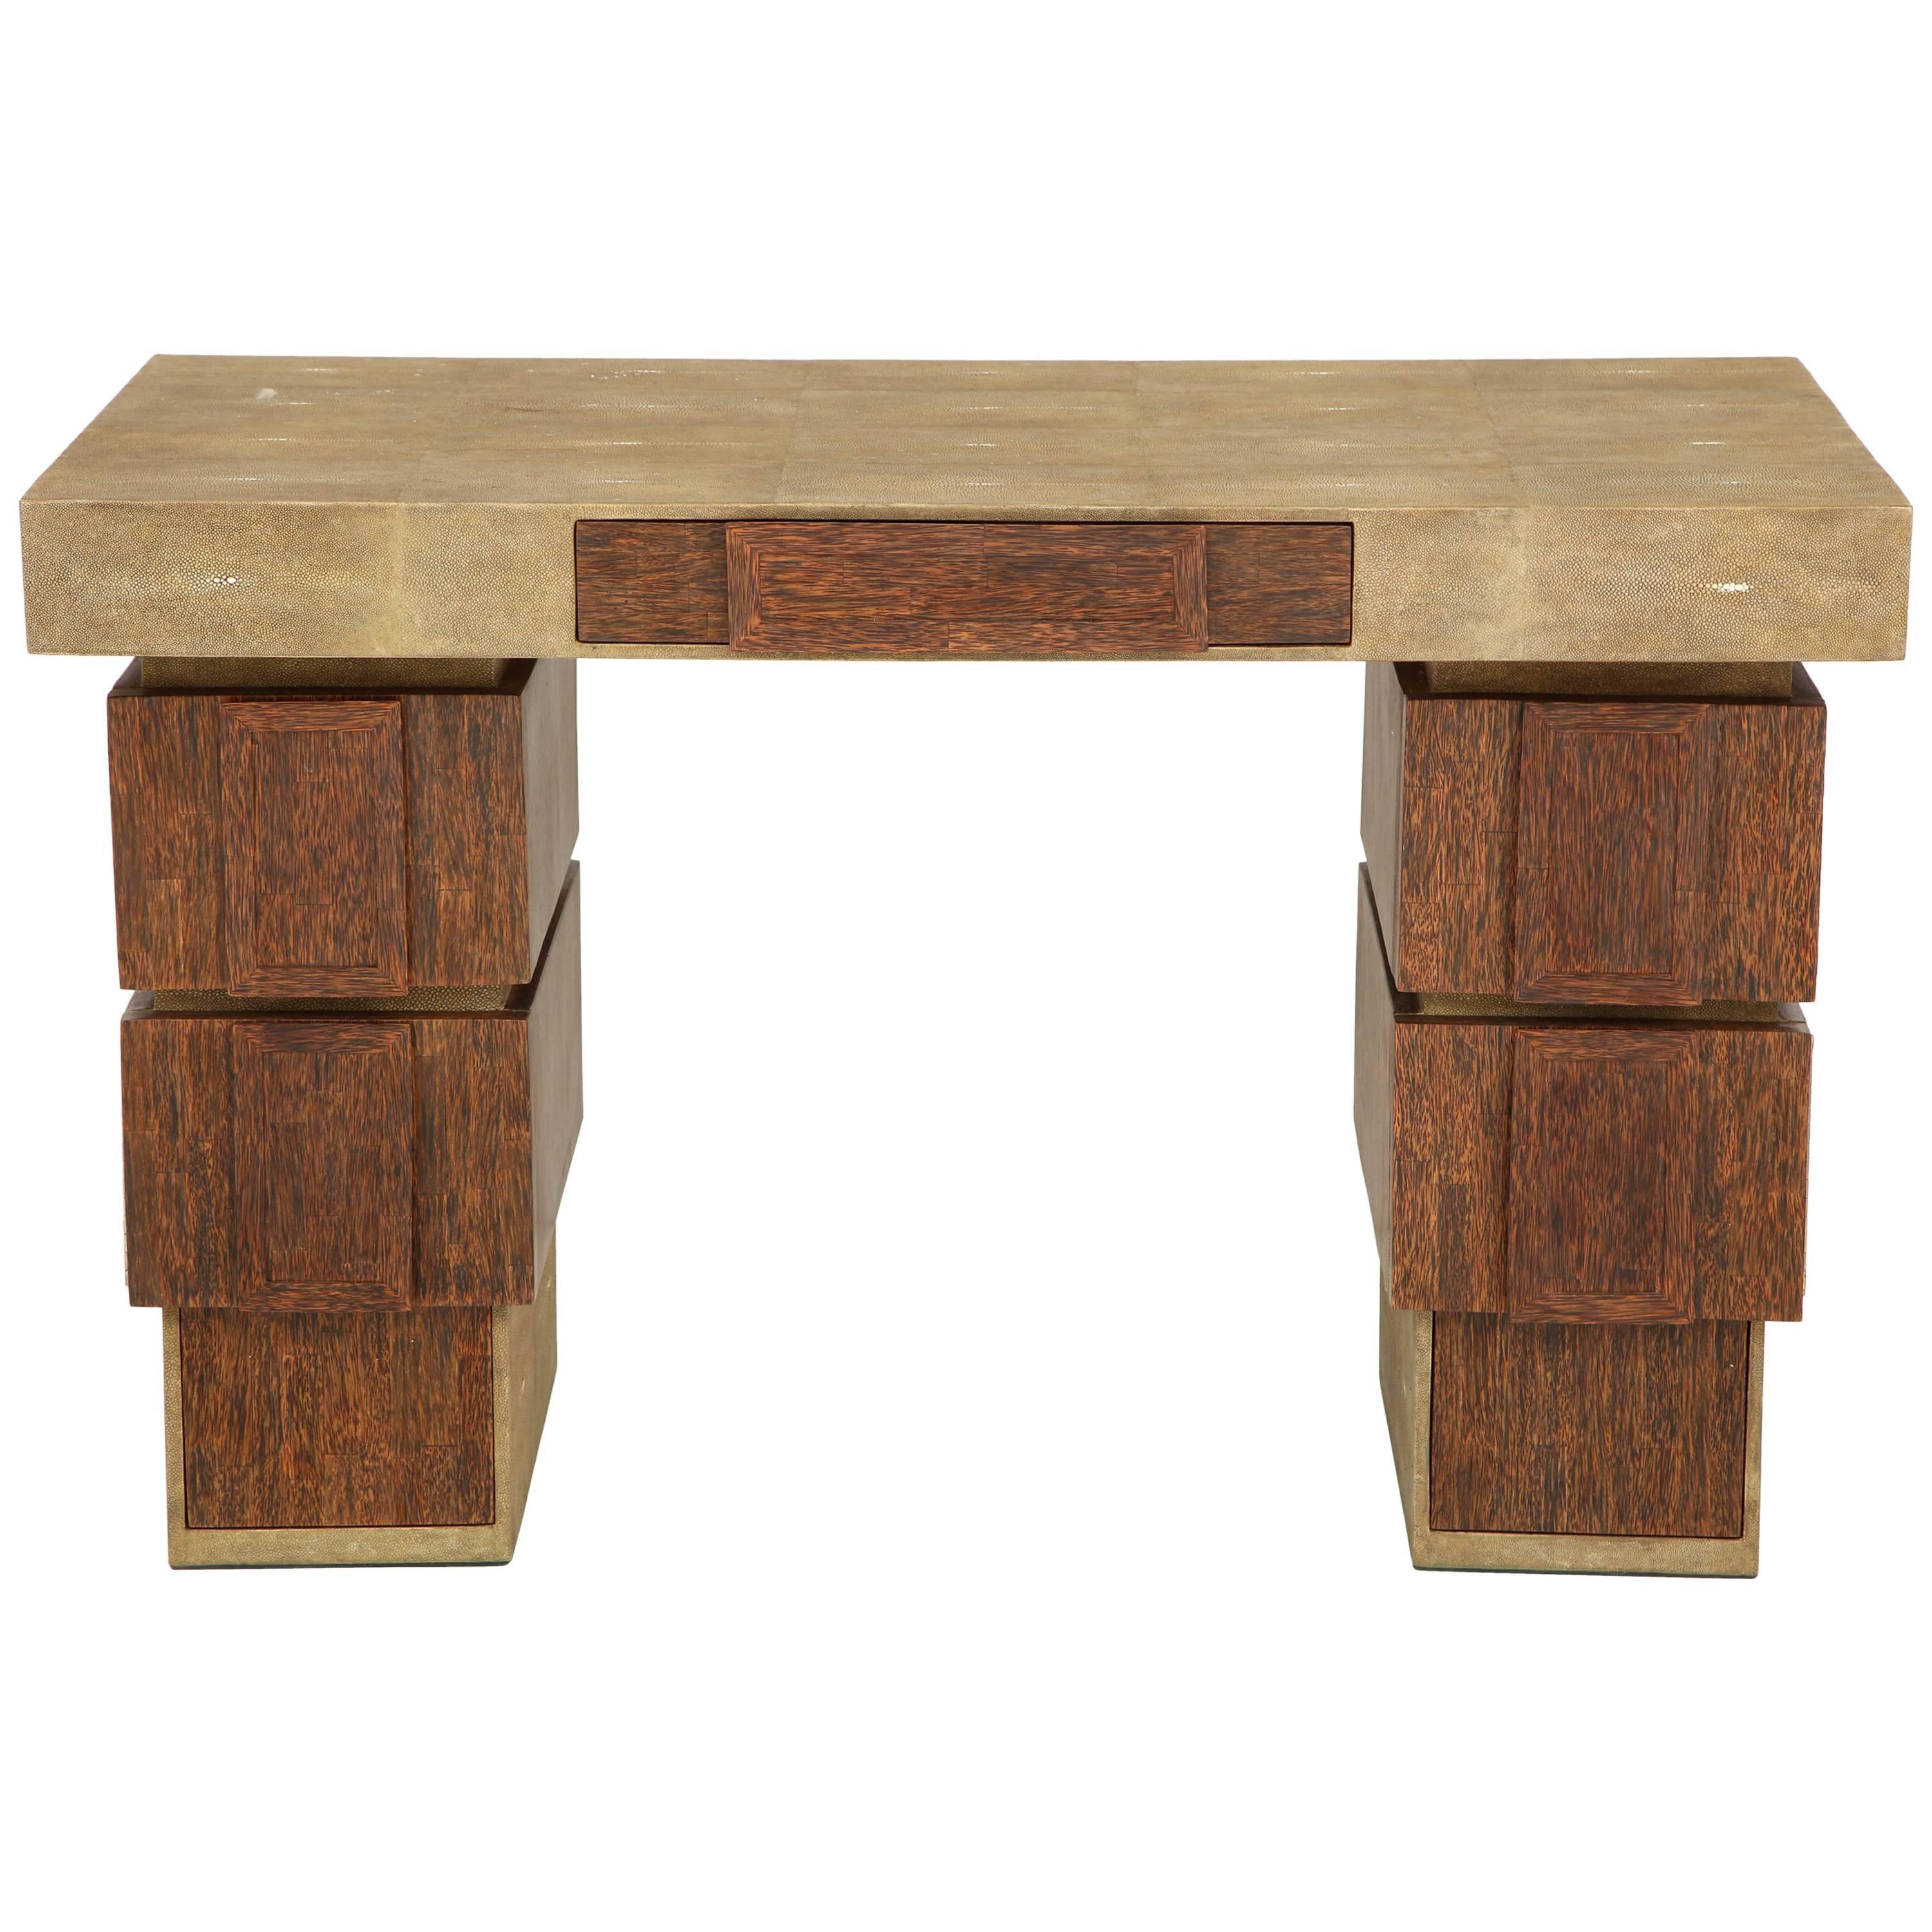 Shagreen And Palm Wood Desk Offered By Area ID